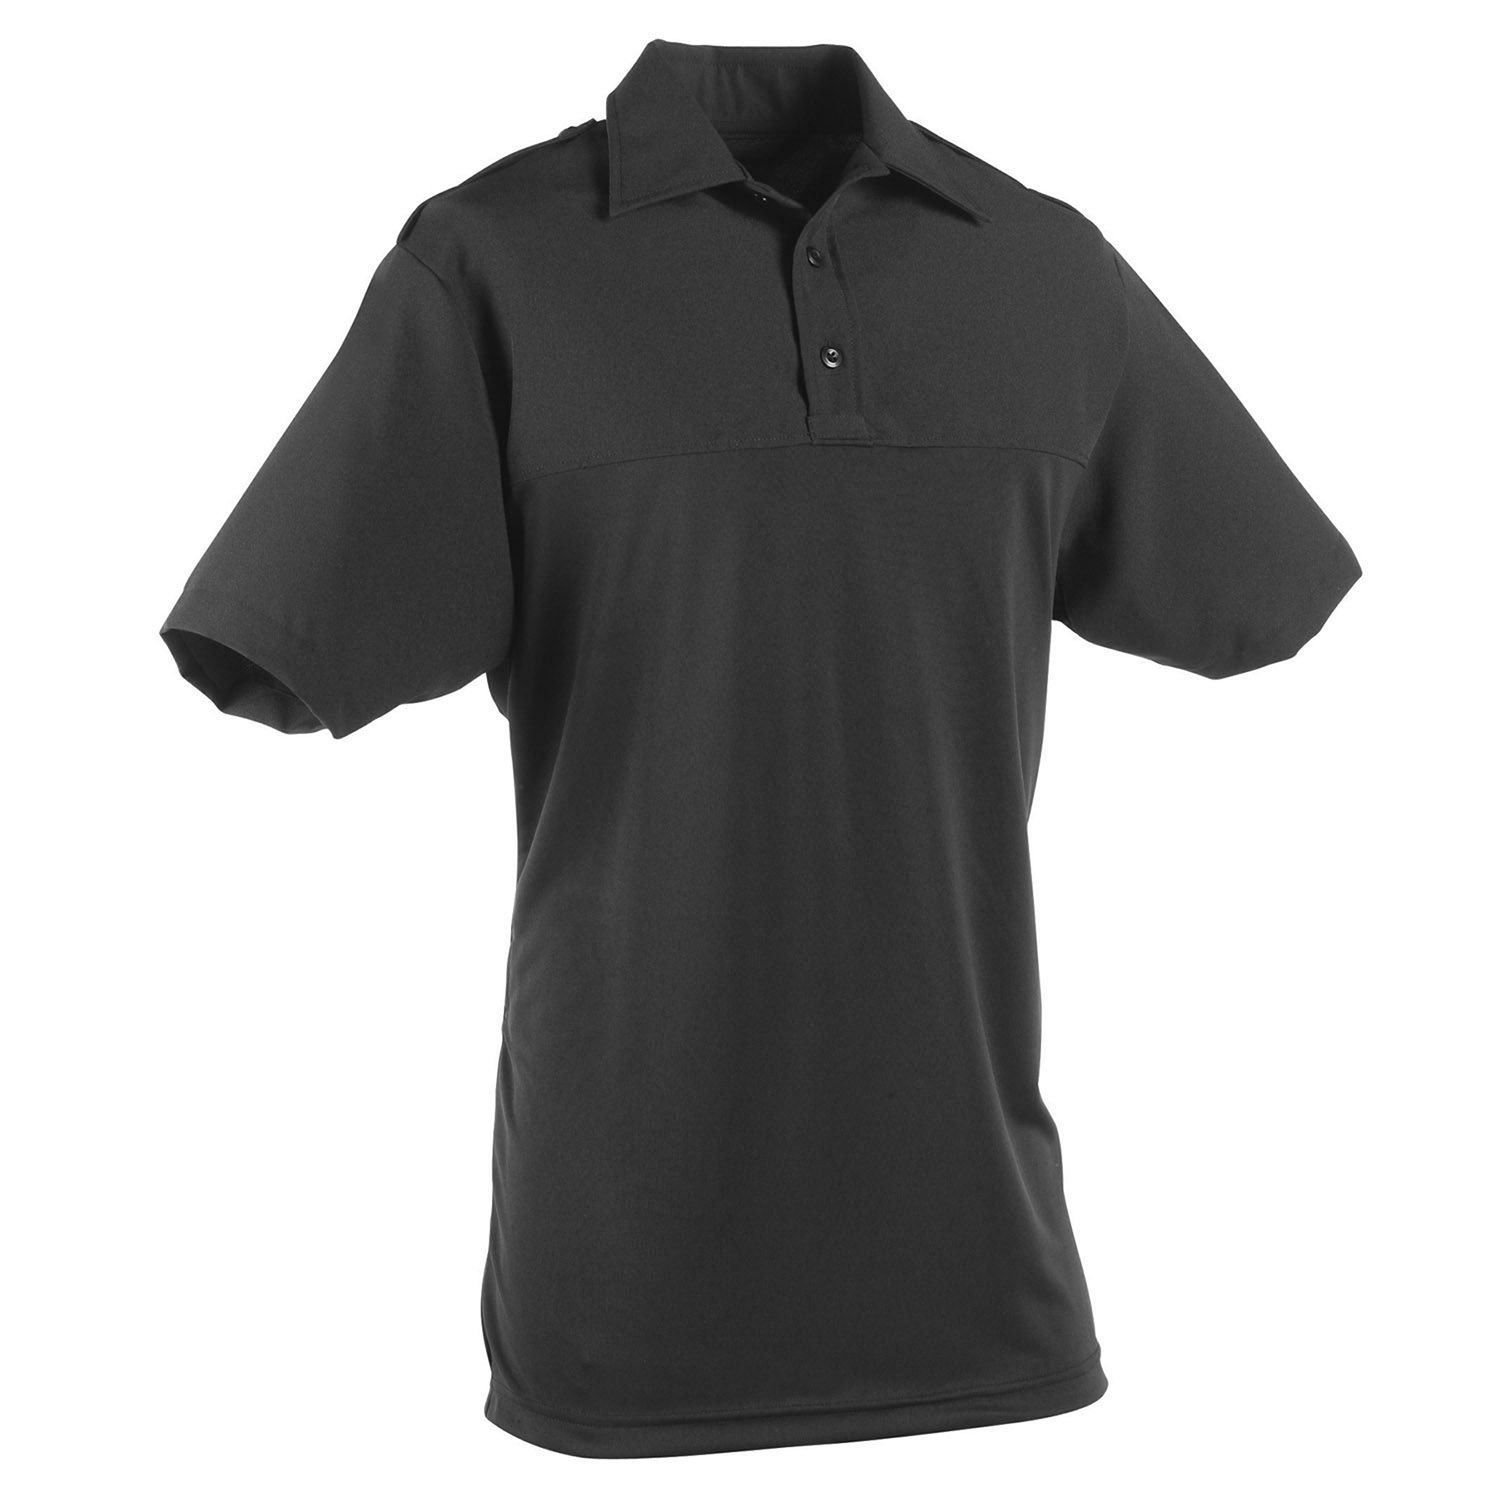 Elbeco Short Sleeve Undervest Shirt